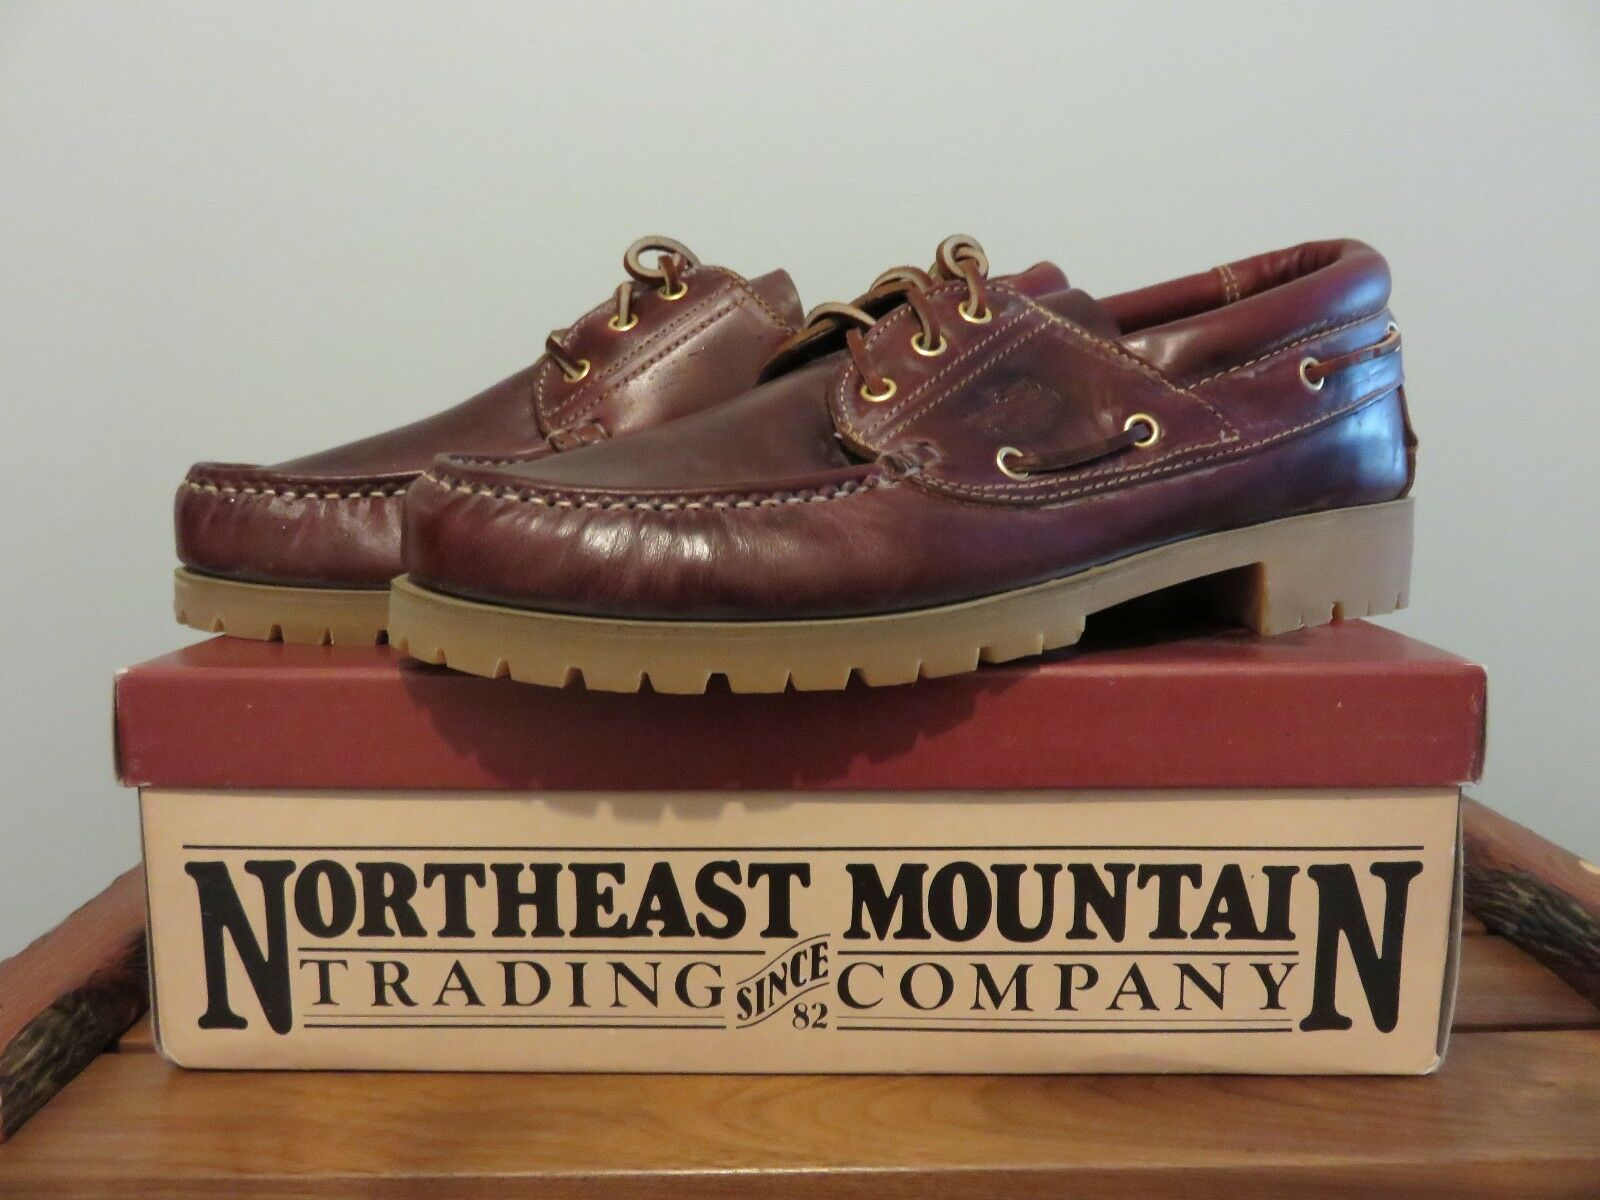 NOS Northeast Vintage Co. Mountain Trading Co. Northeast Vintage Northeast Deck Schuhe ... fce5b7